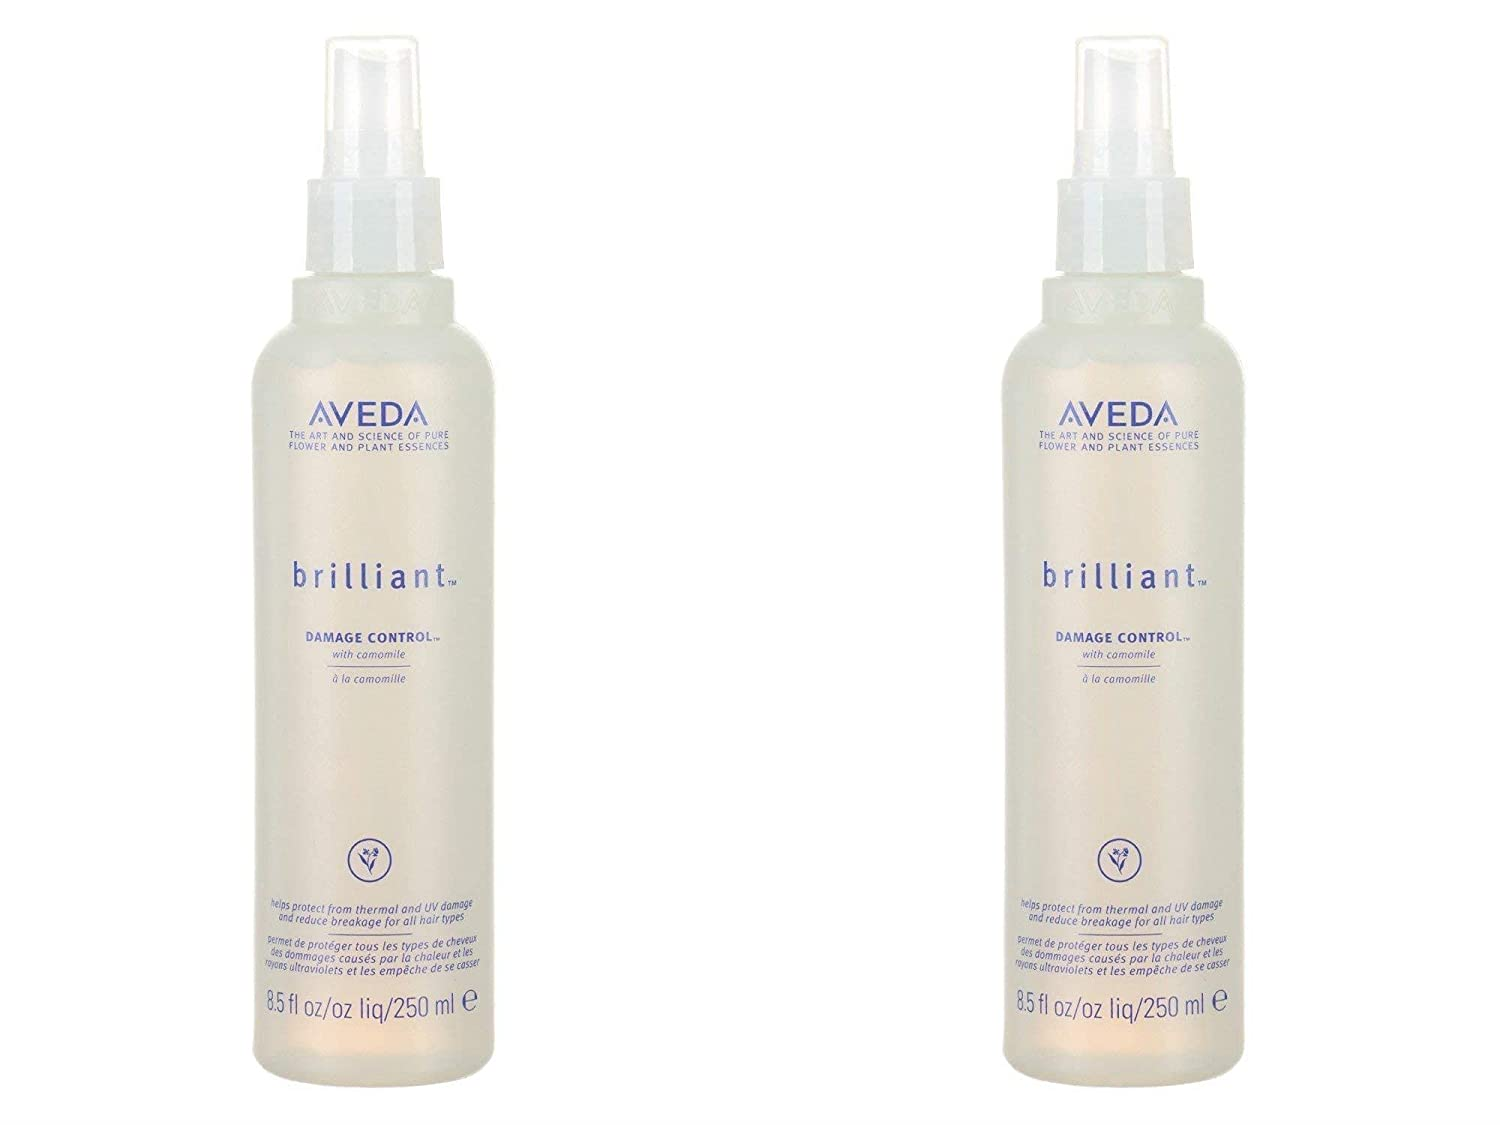 AVEDA by Aveda Brilliant Damage Control For All UV Hair Damaged Limited price Cheap mail order shopping sale